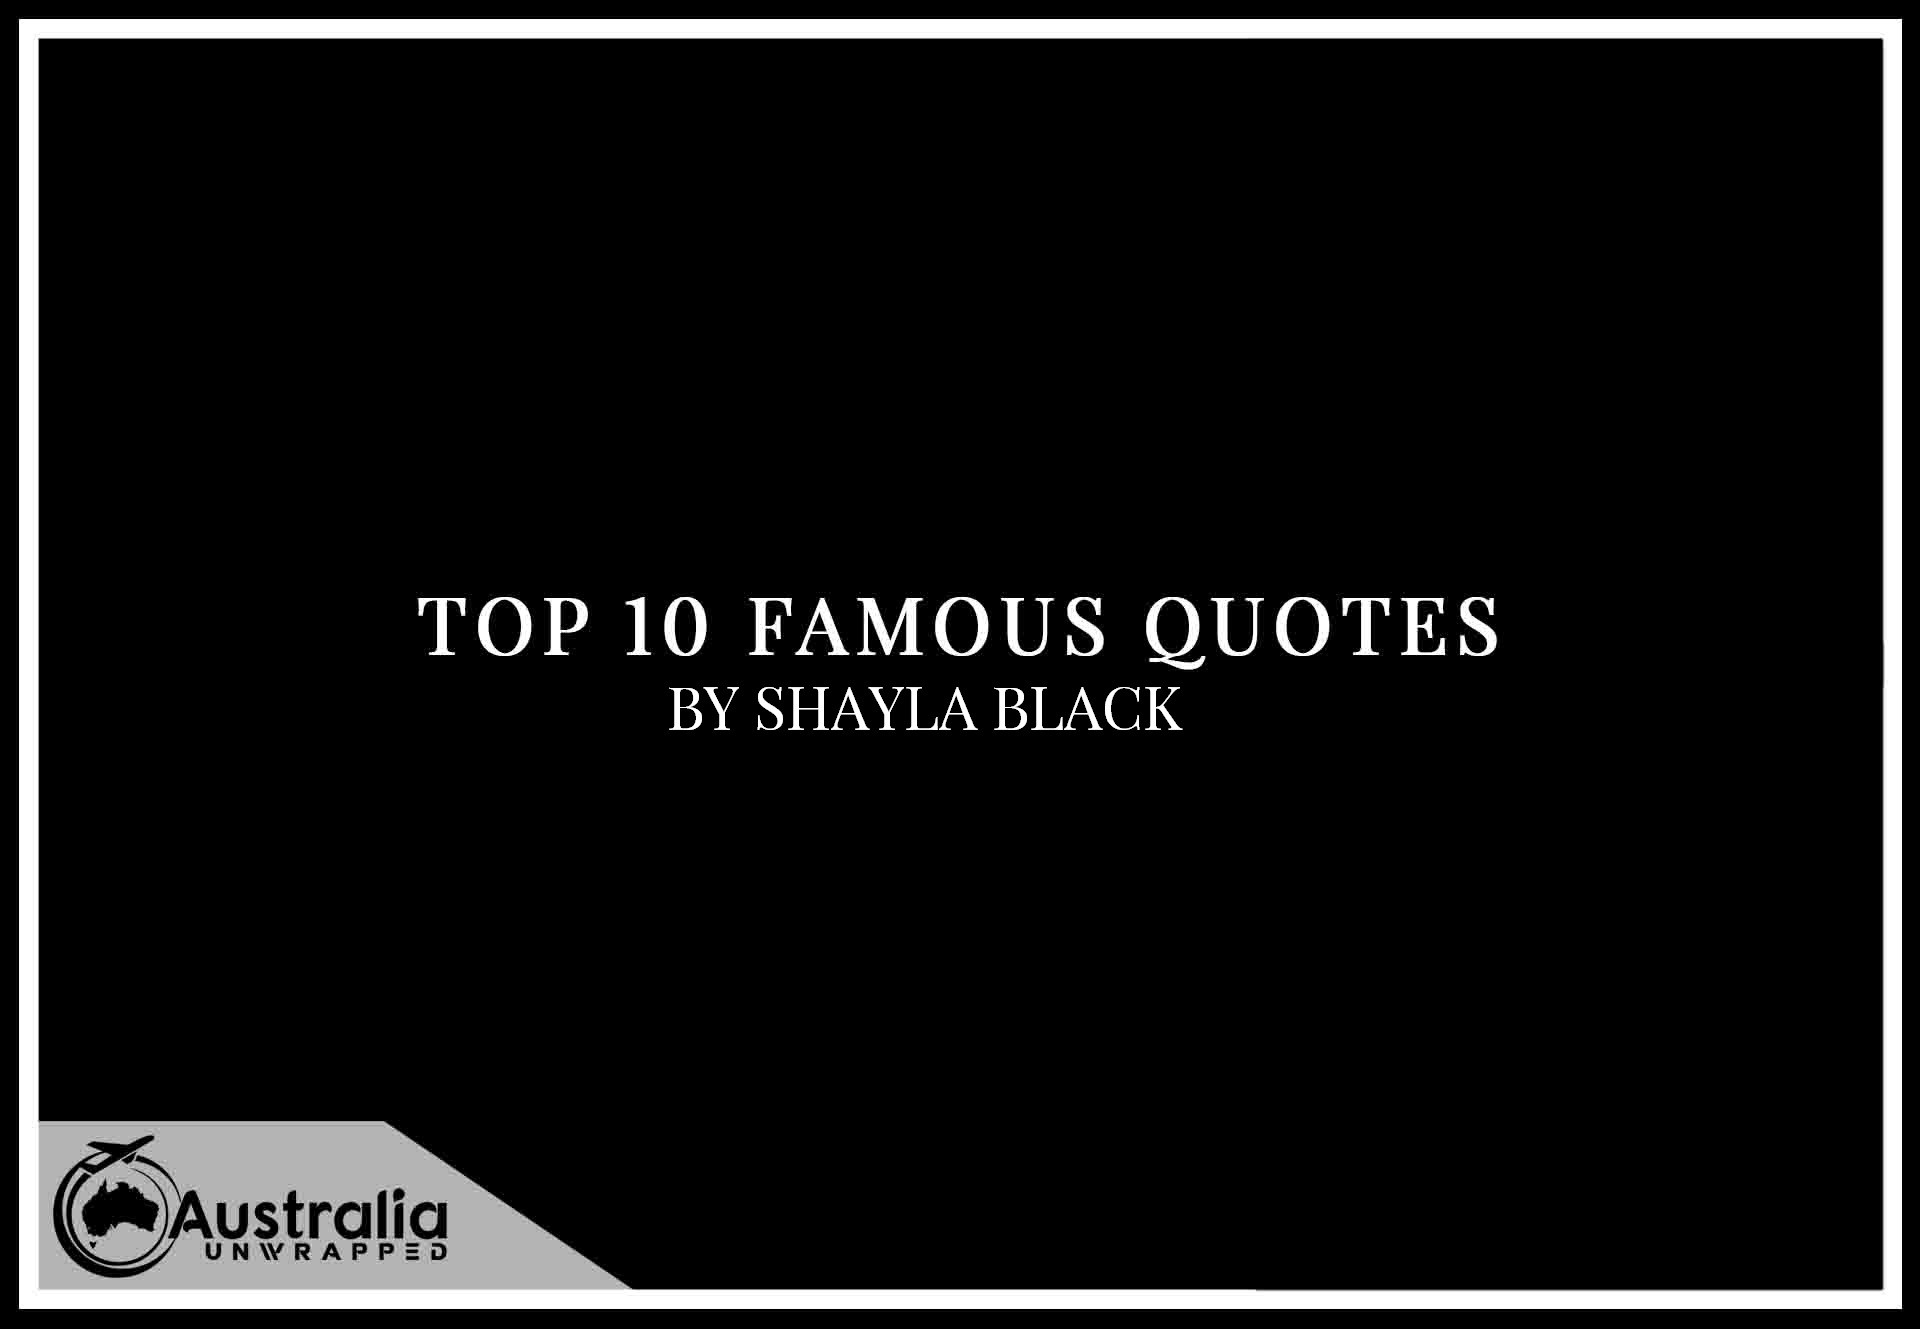 Top 10 Famous Quotes by Author Shayla Black